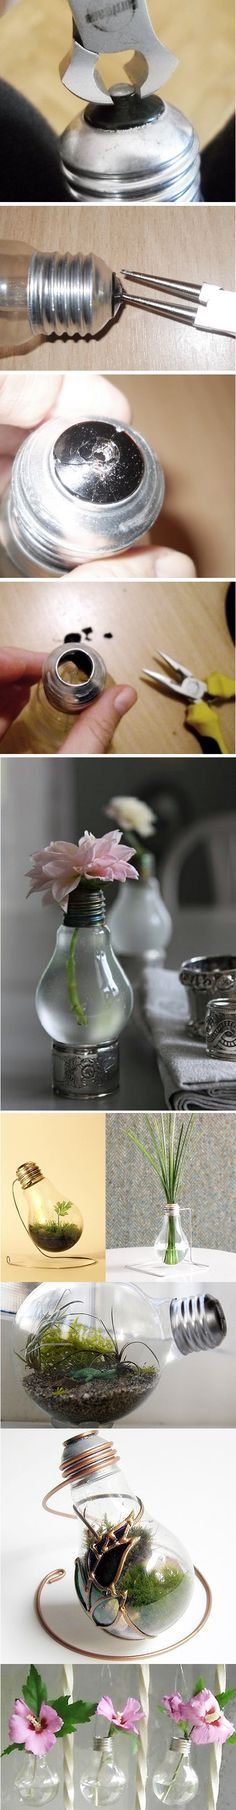 DIY Project: Recycled Light Bulbs • These can become Chickens, Bugs ANYthing artsy, PINTREST ideas are endless